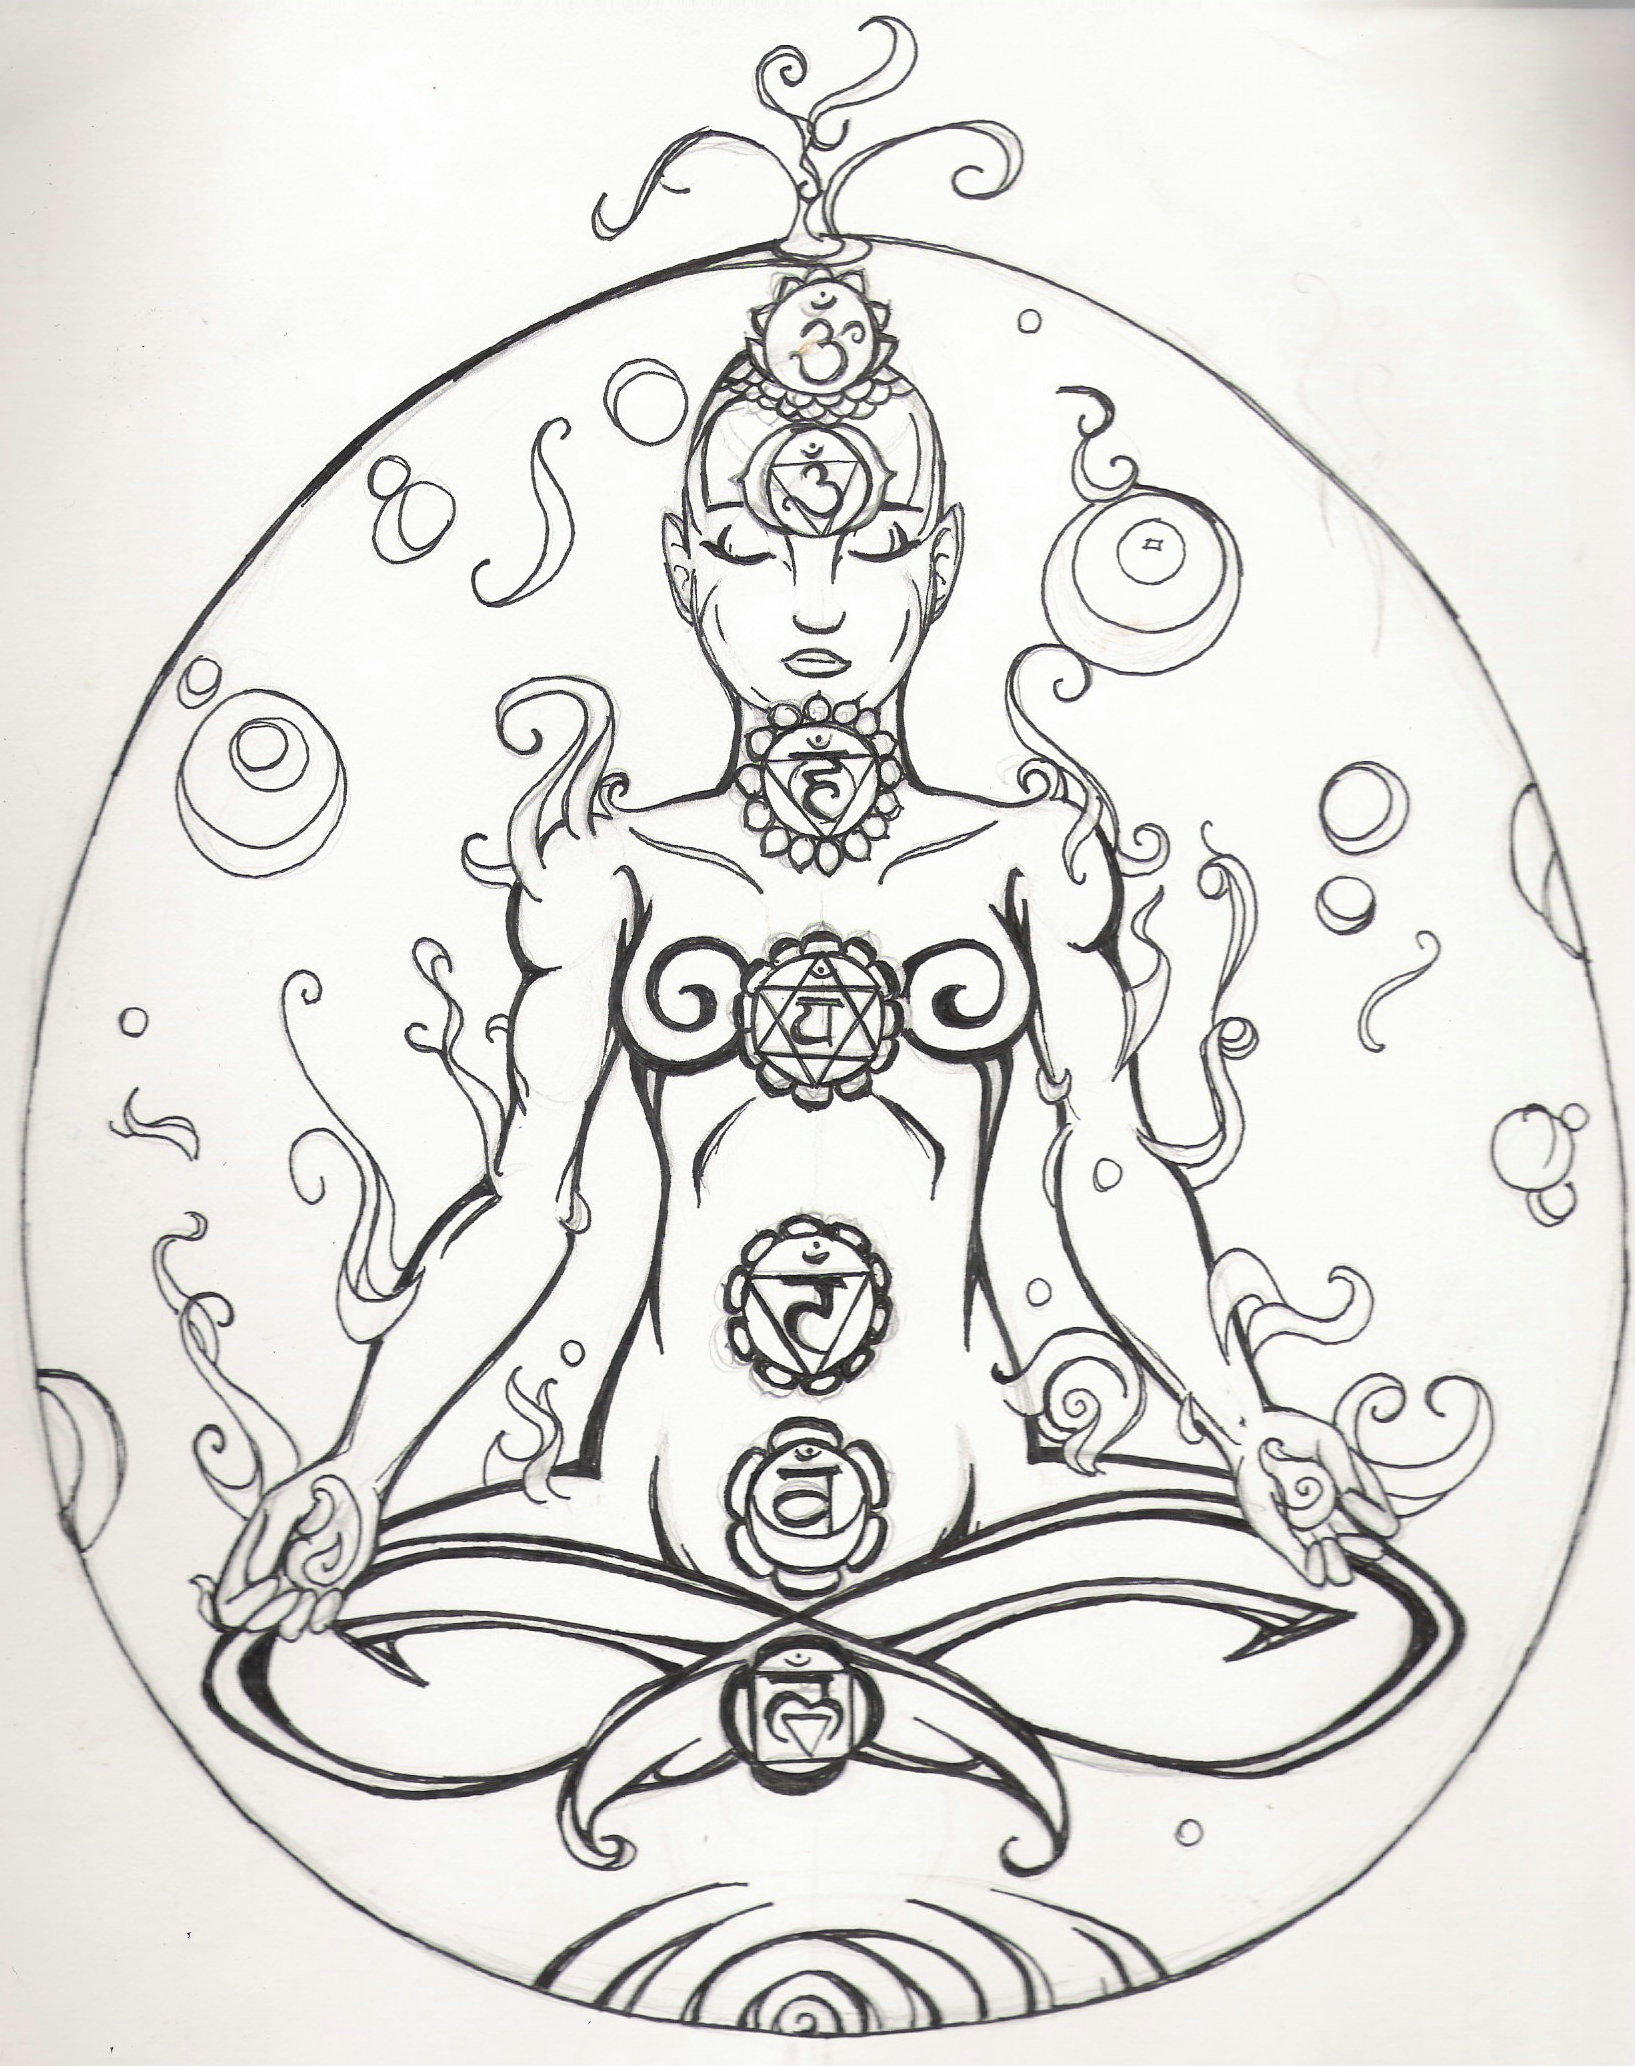 Dragonfly Project Chakras 1 By Draven17a On Deviantart